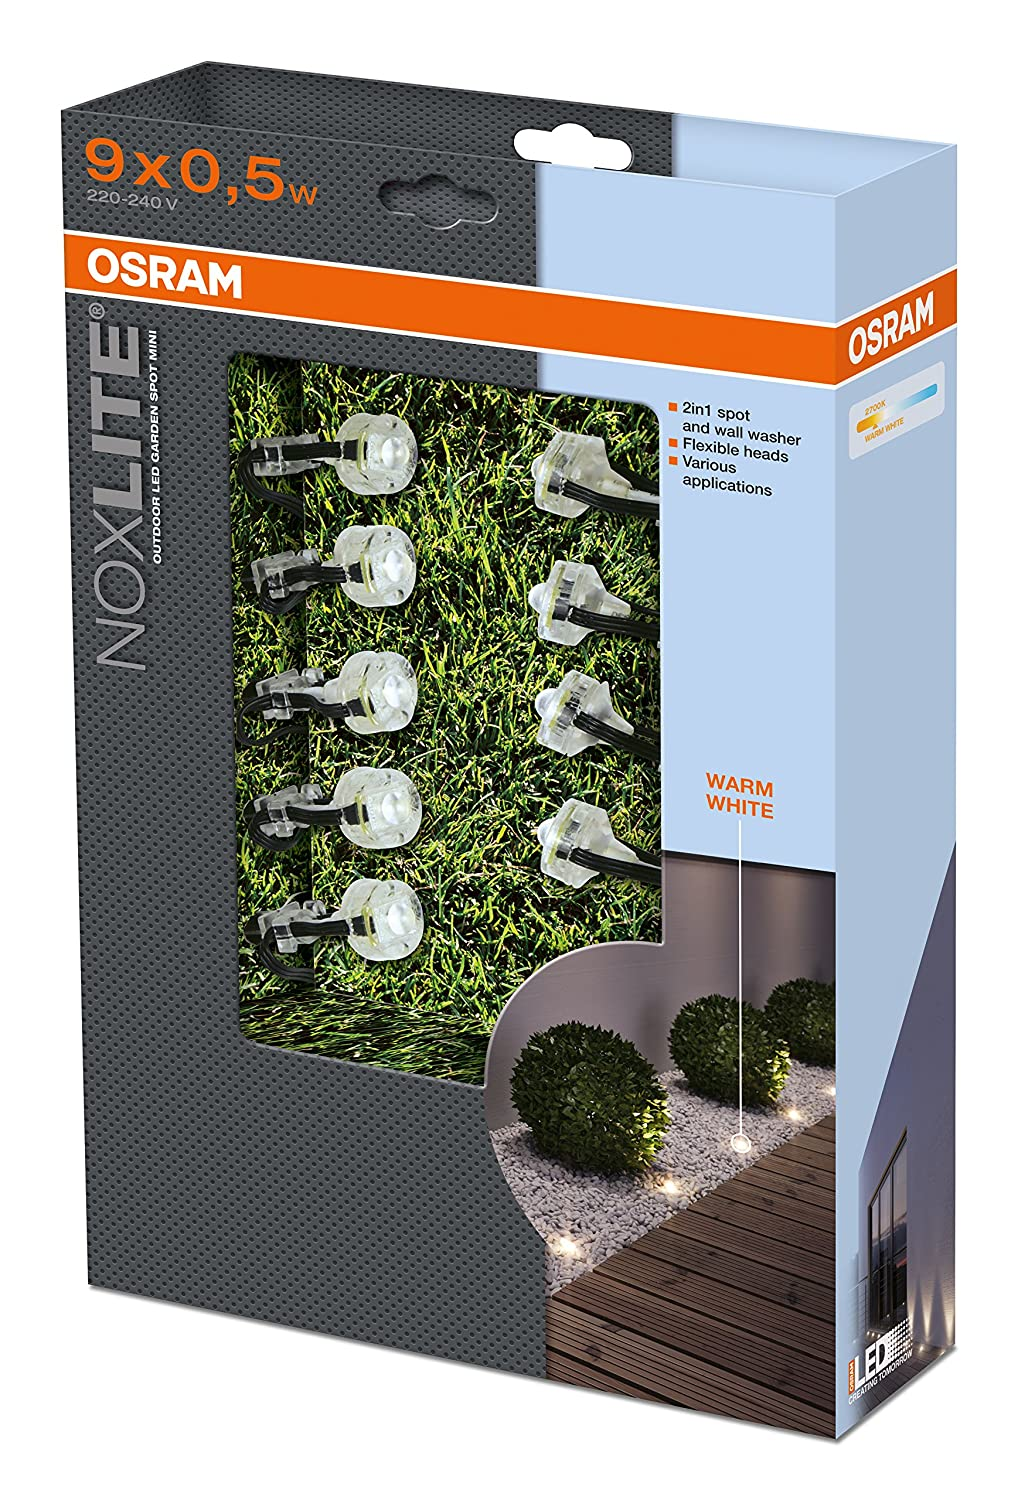 clairage de jardin osram led noxlite garden muni de 9 spots. Black Bedroom Furniture Sets. Home Design Ideas